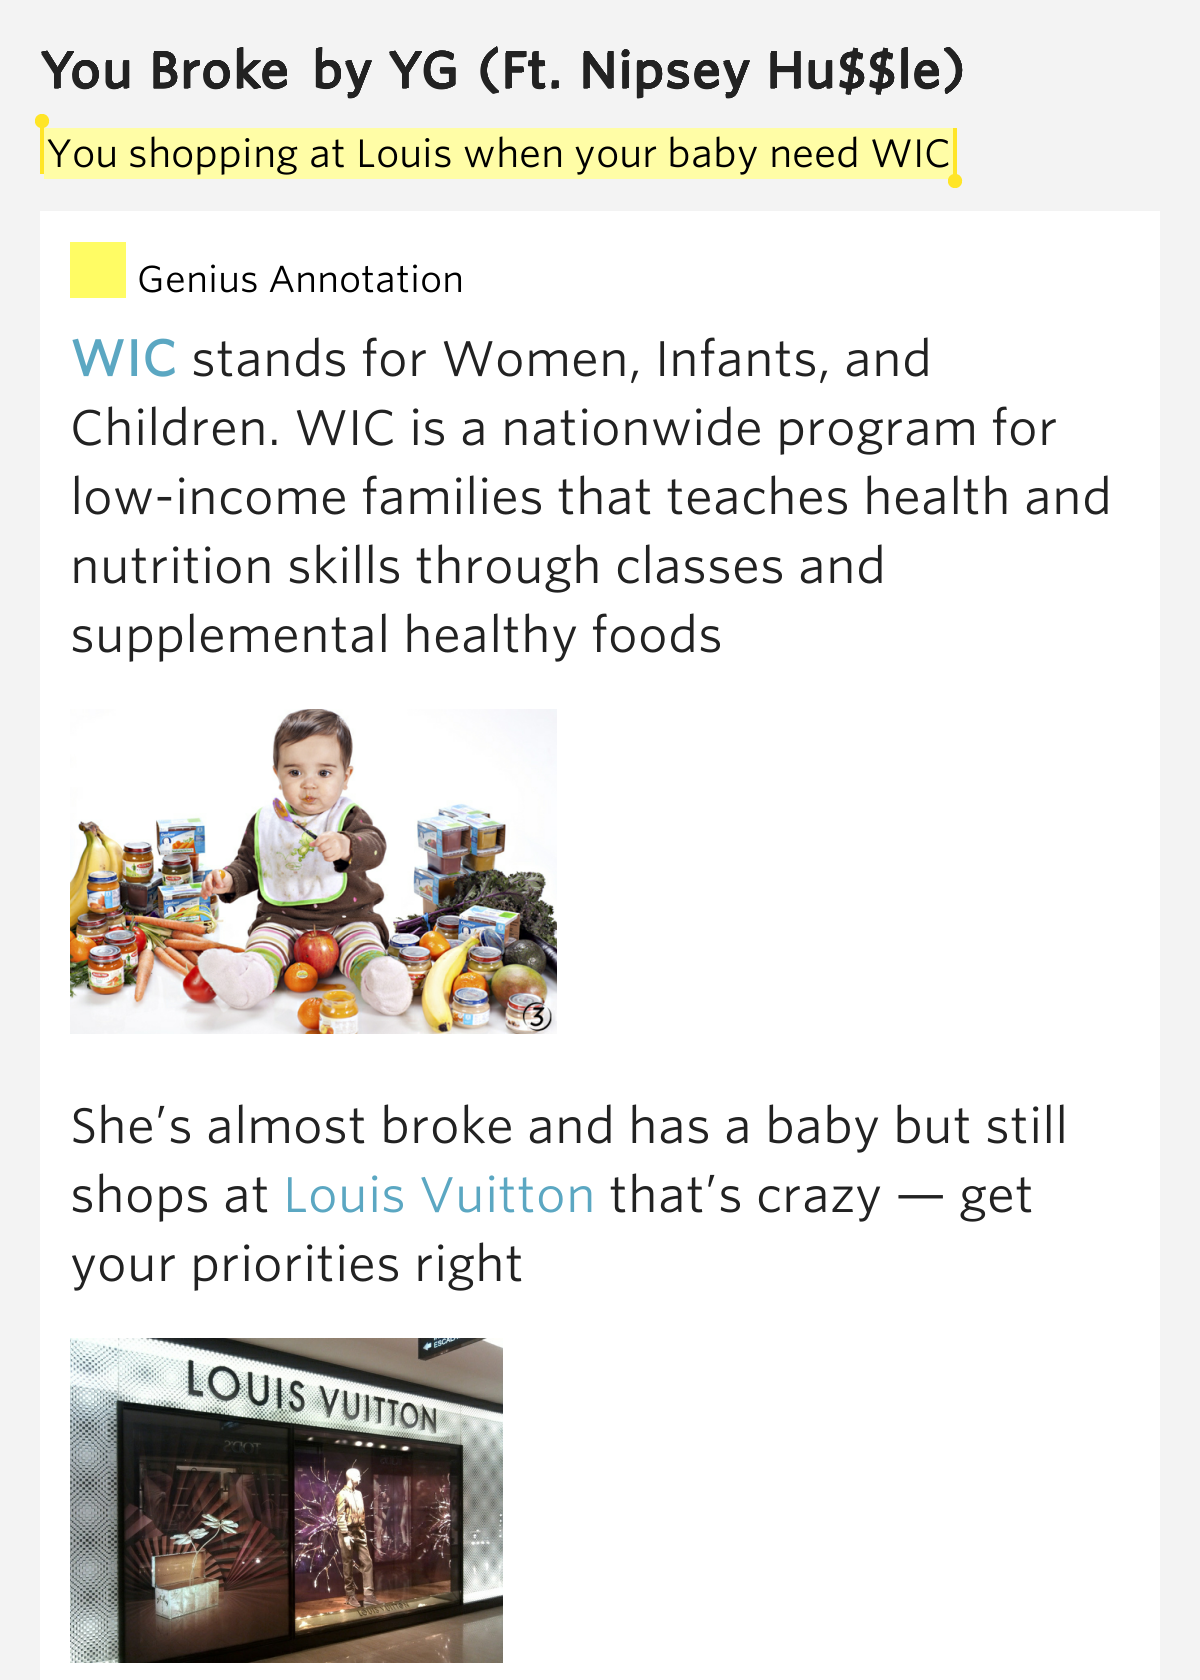 You shopping at Louis when your baby need WIC – You Broke ...